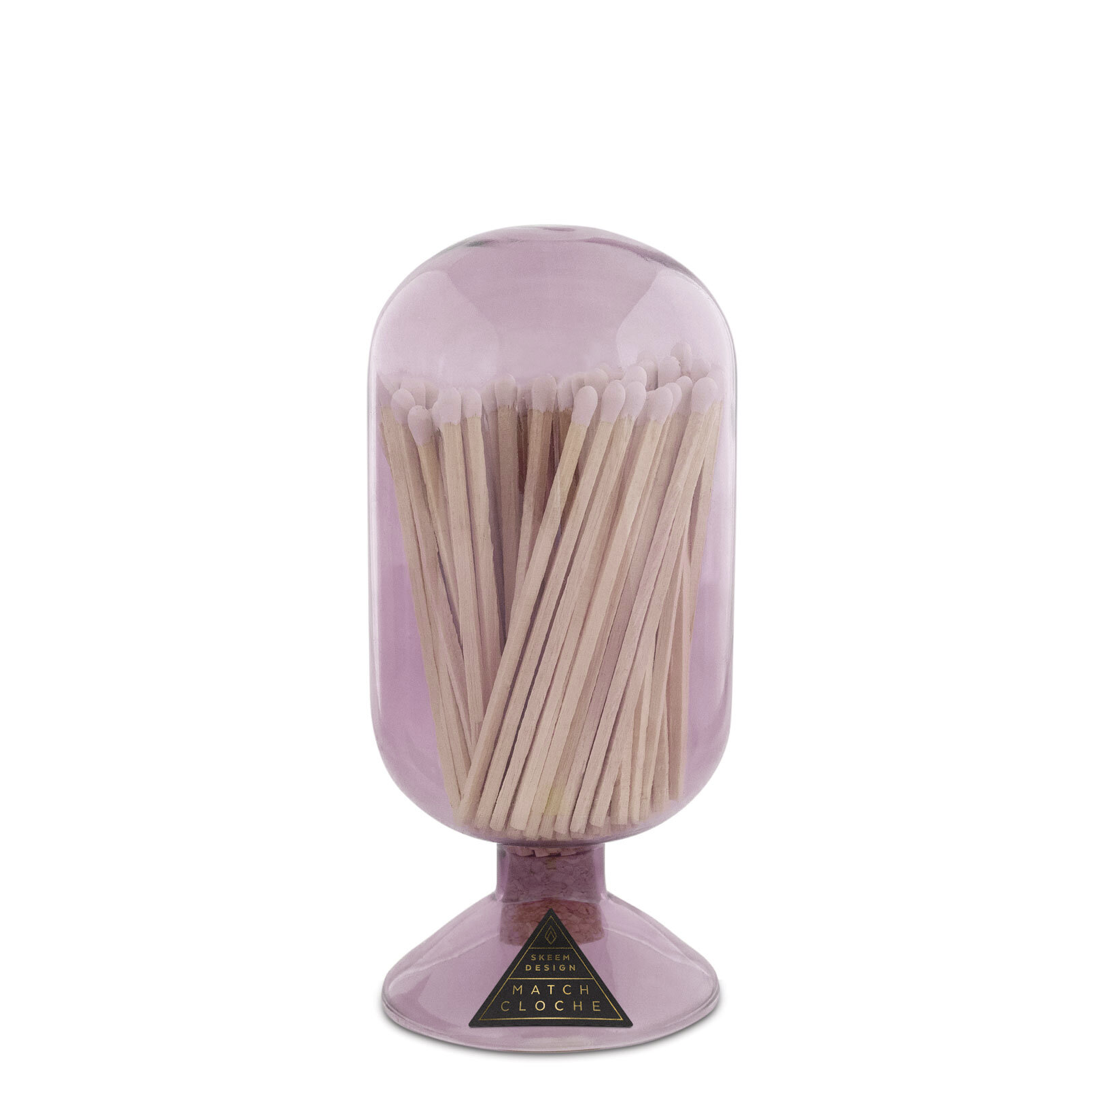 Match Glass Cloche in Violet